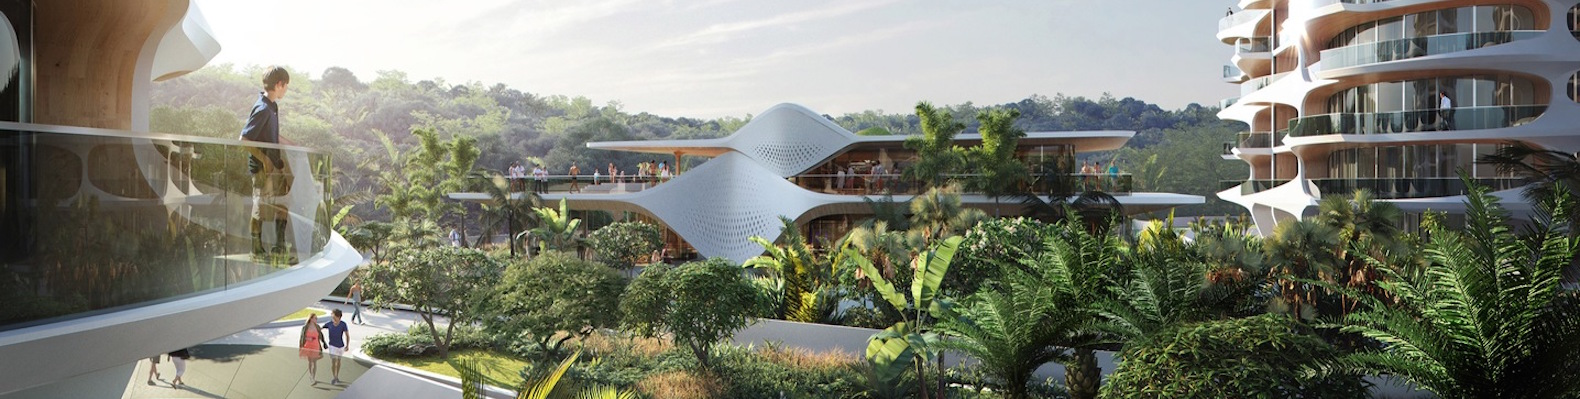 Zaha Hadid Architects Designs Ecological Residential Complex For Mexicos Riviera Maya